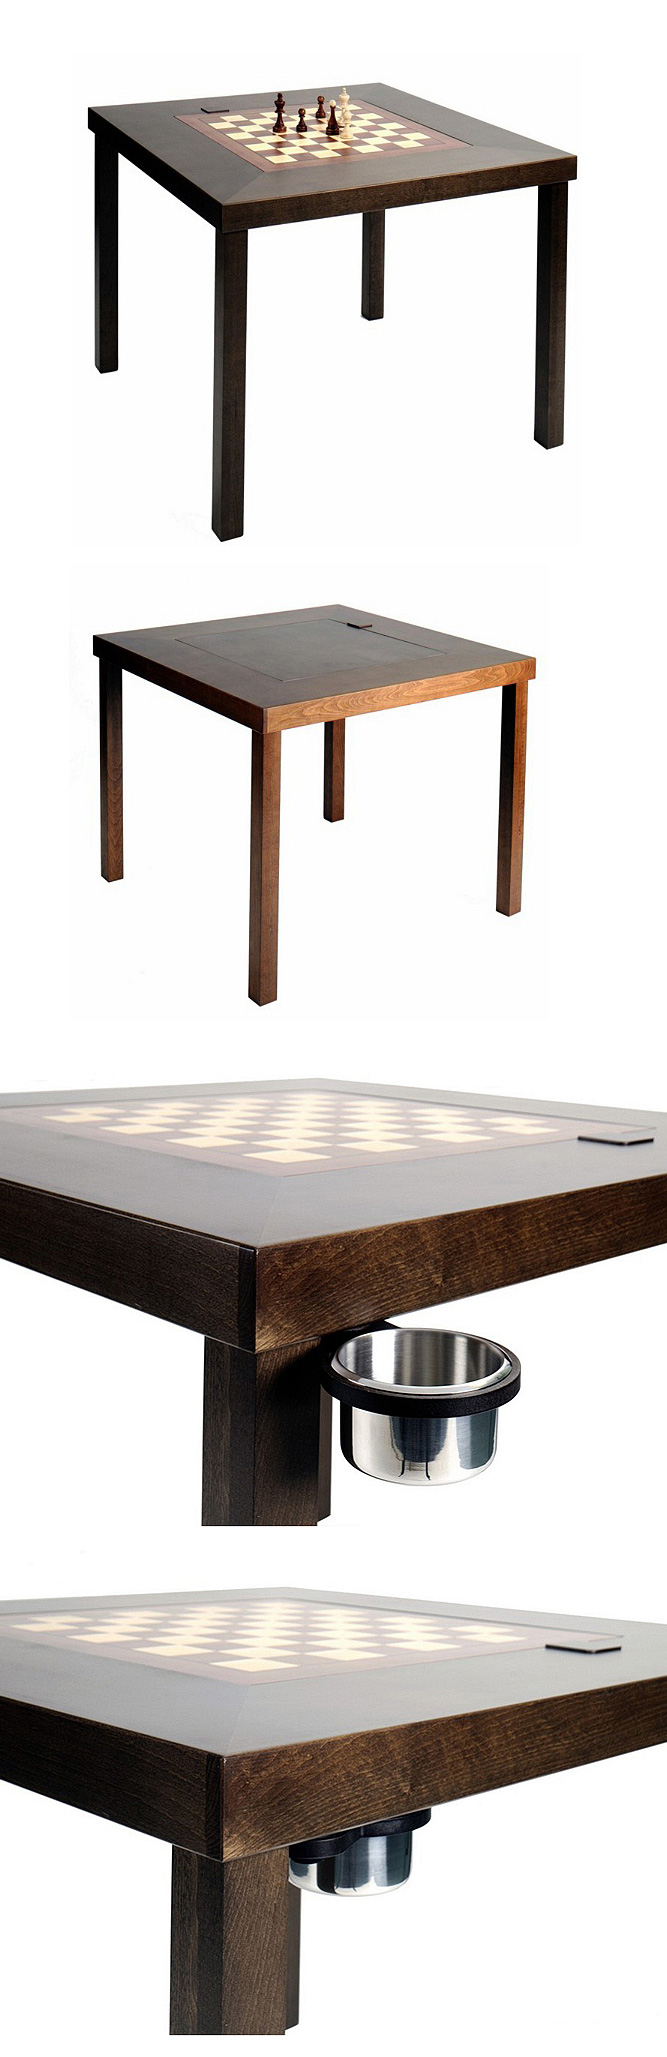 Fide Luxurious Game Table